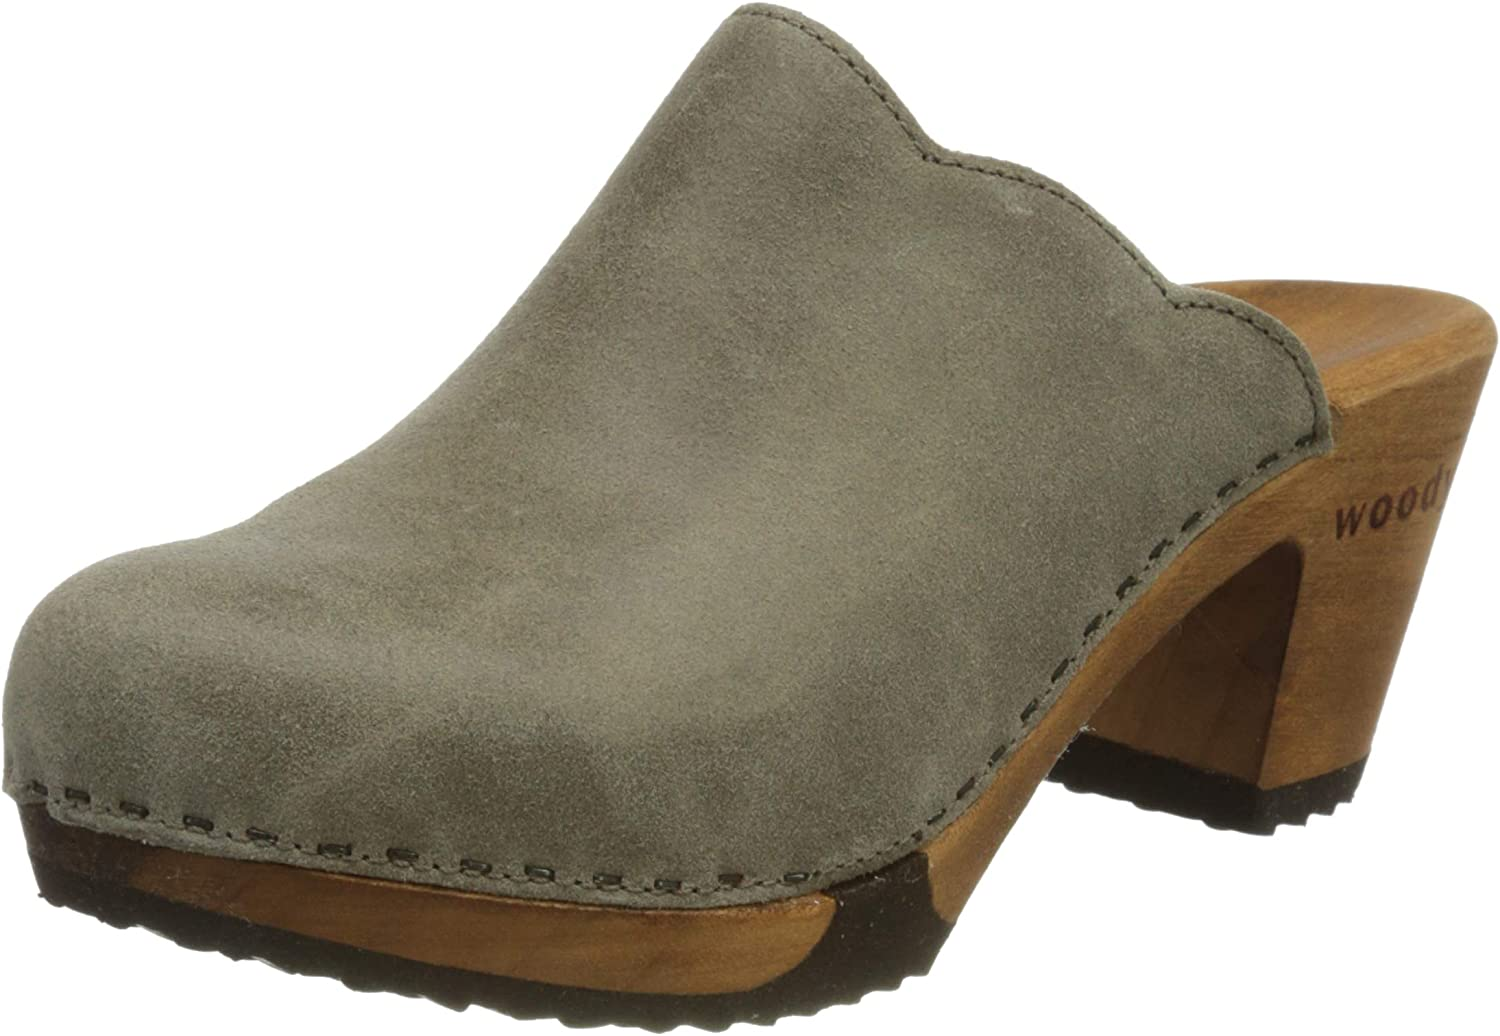 Woody Women's オープニング 大放出セール 正規店 Wooden Clog Shoes